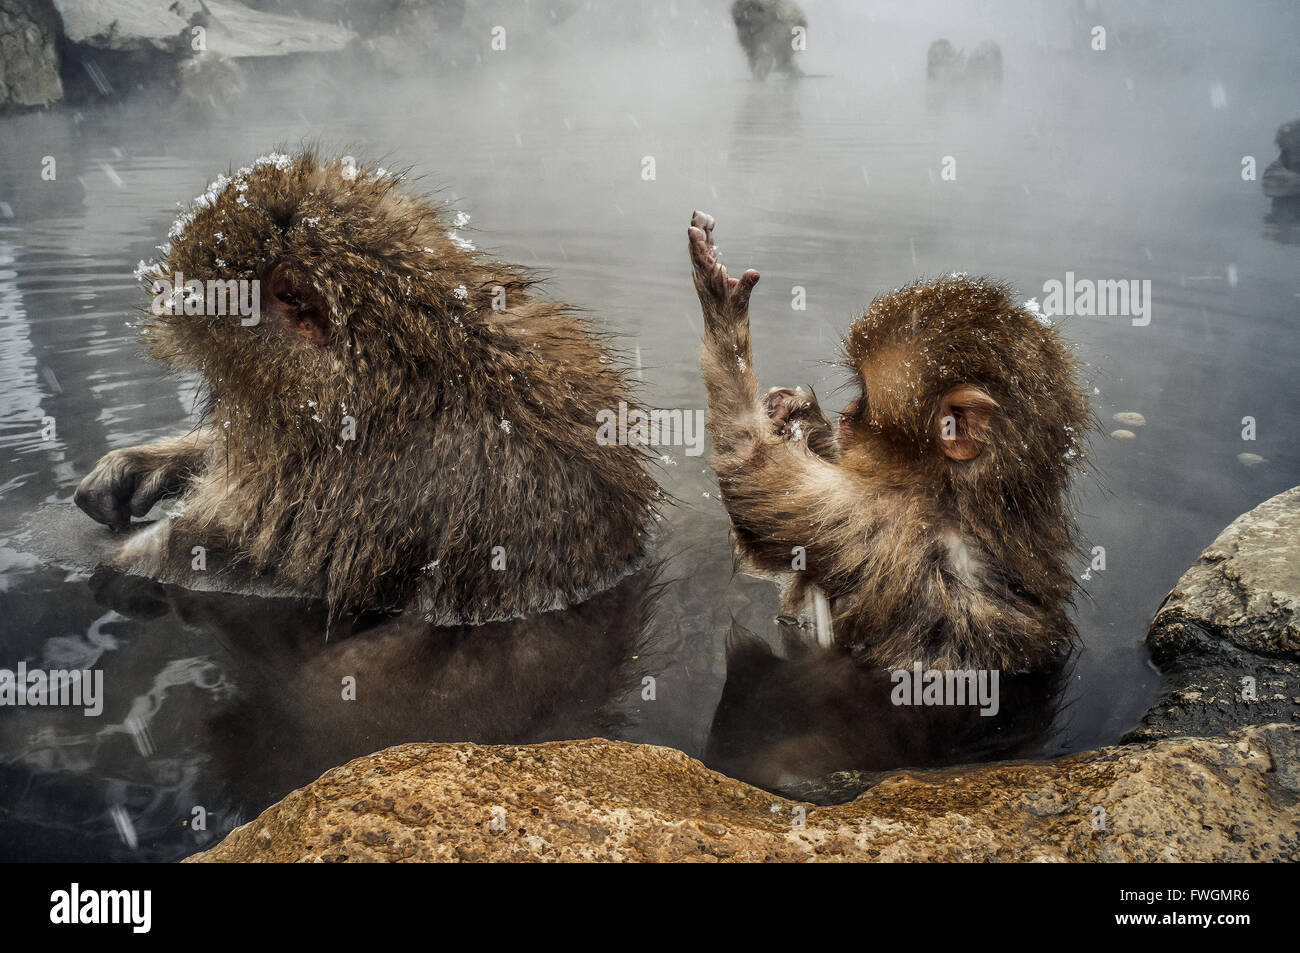 Side View Of Baby Monkeys In Water - Stock Image